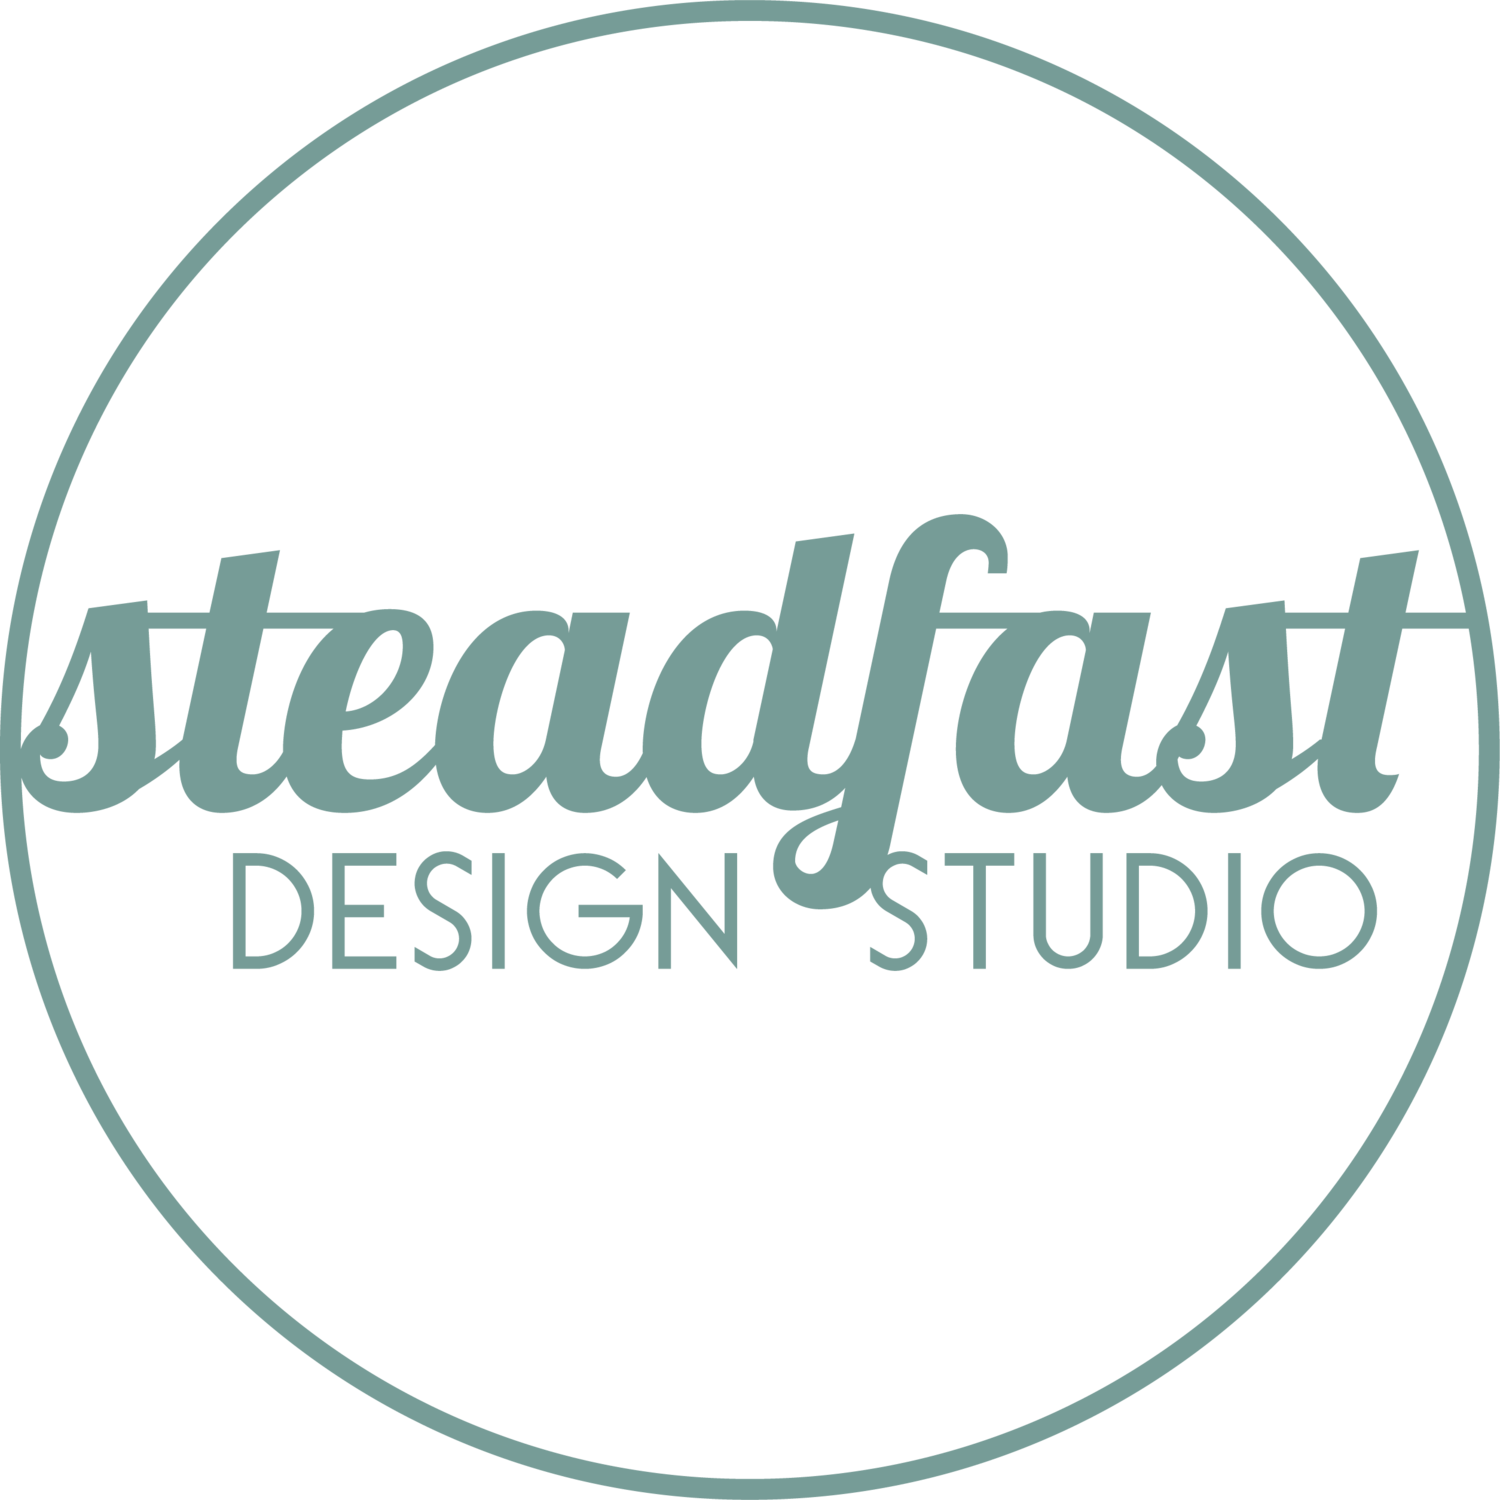 Steadfast Design Studio